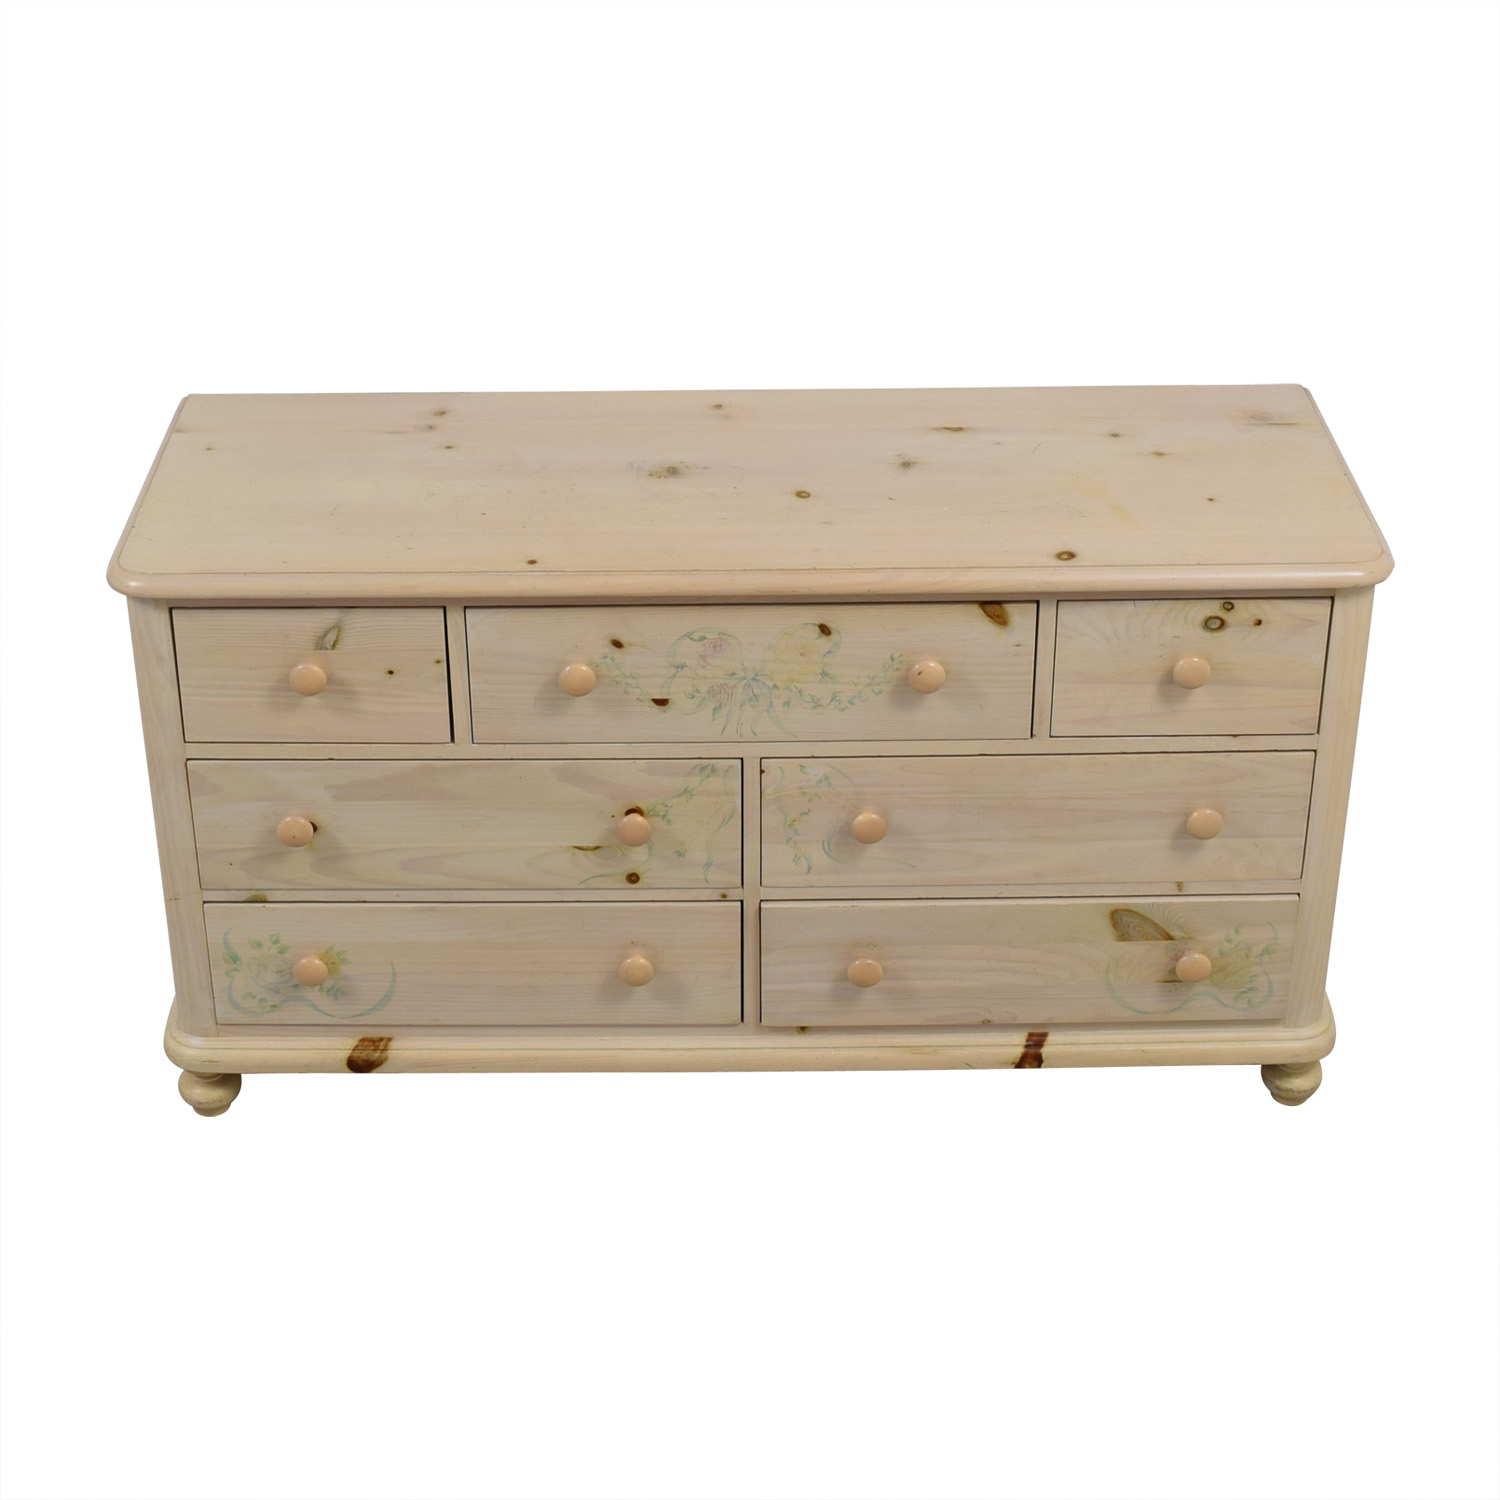 shop Thomasville Thomasville Natural Wood Seven-Drawer Dresser online